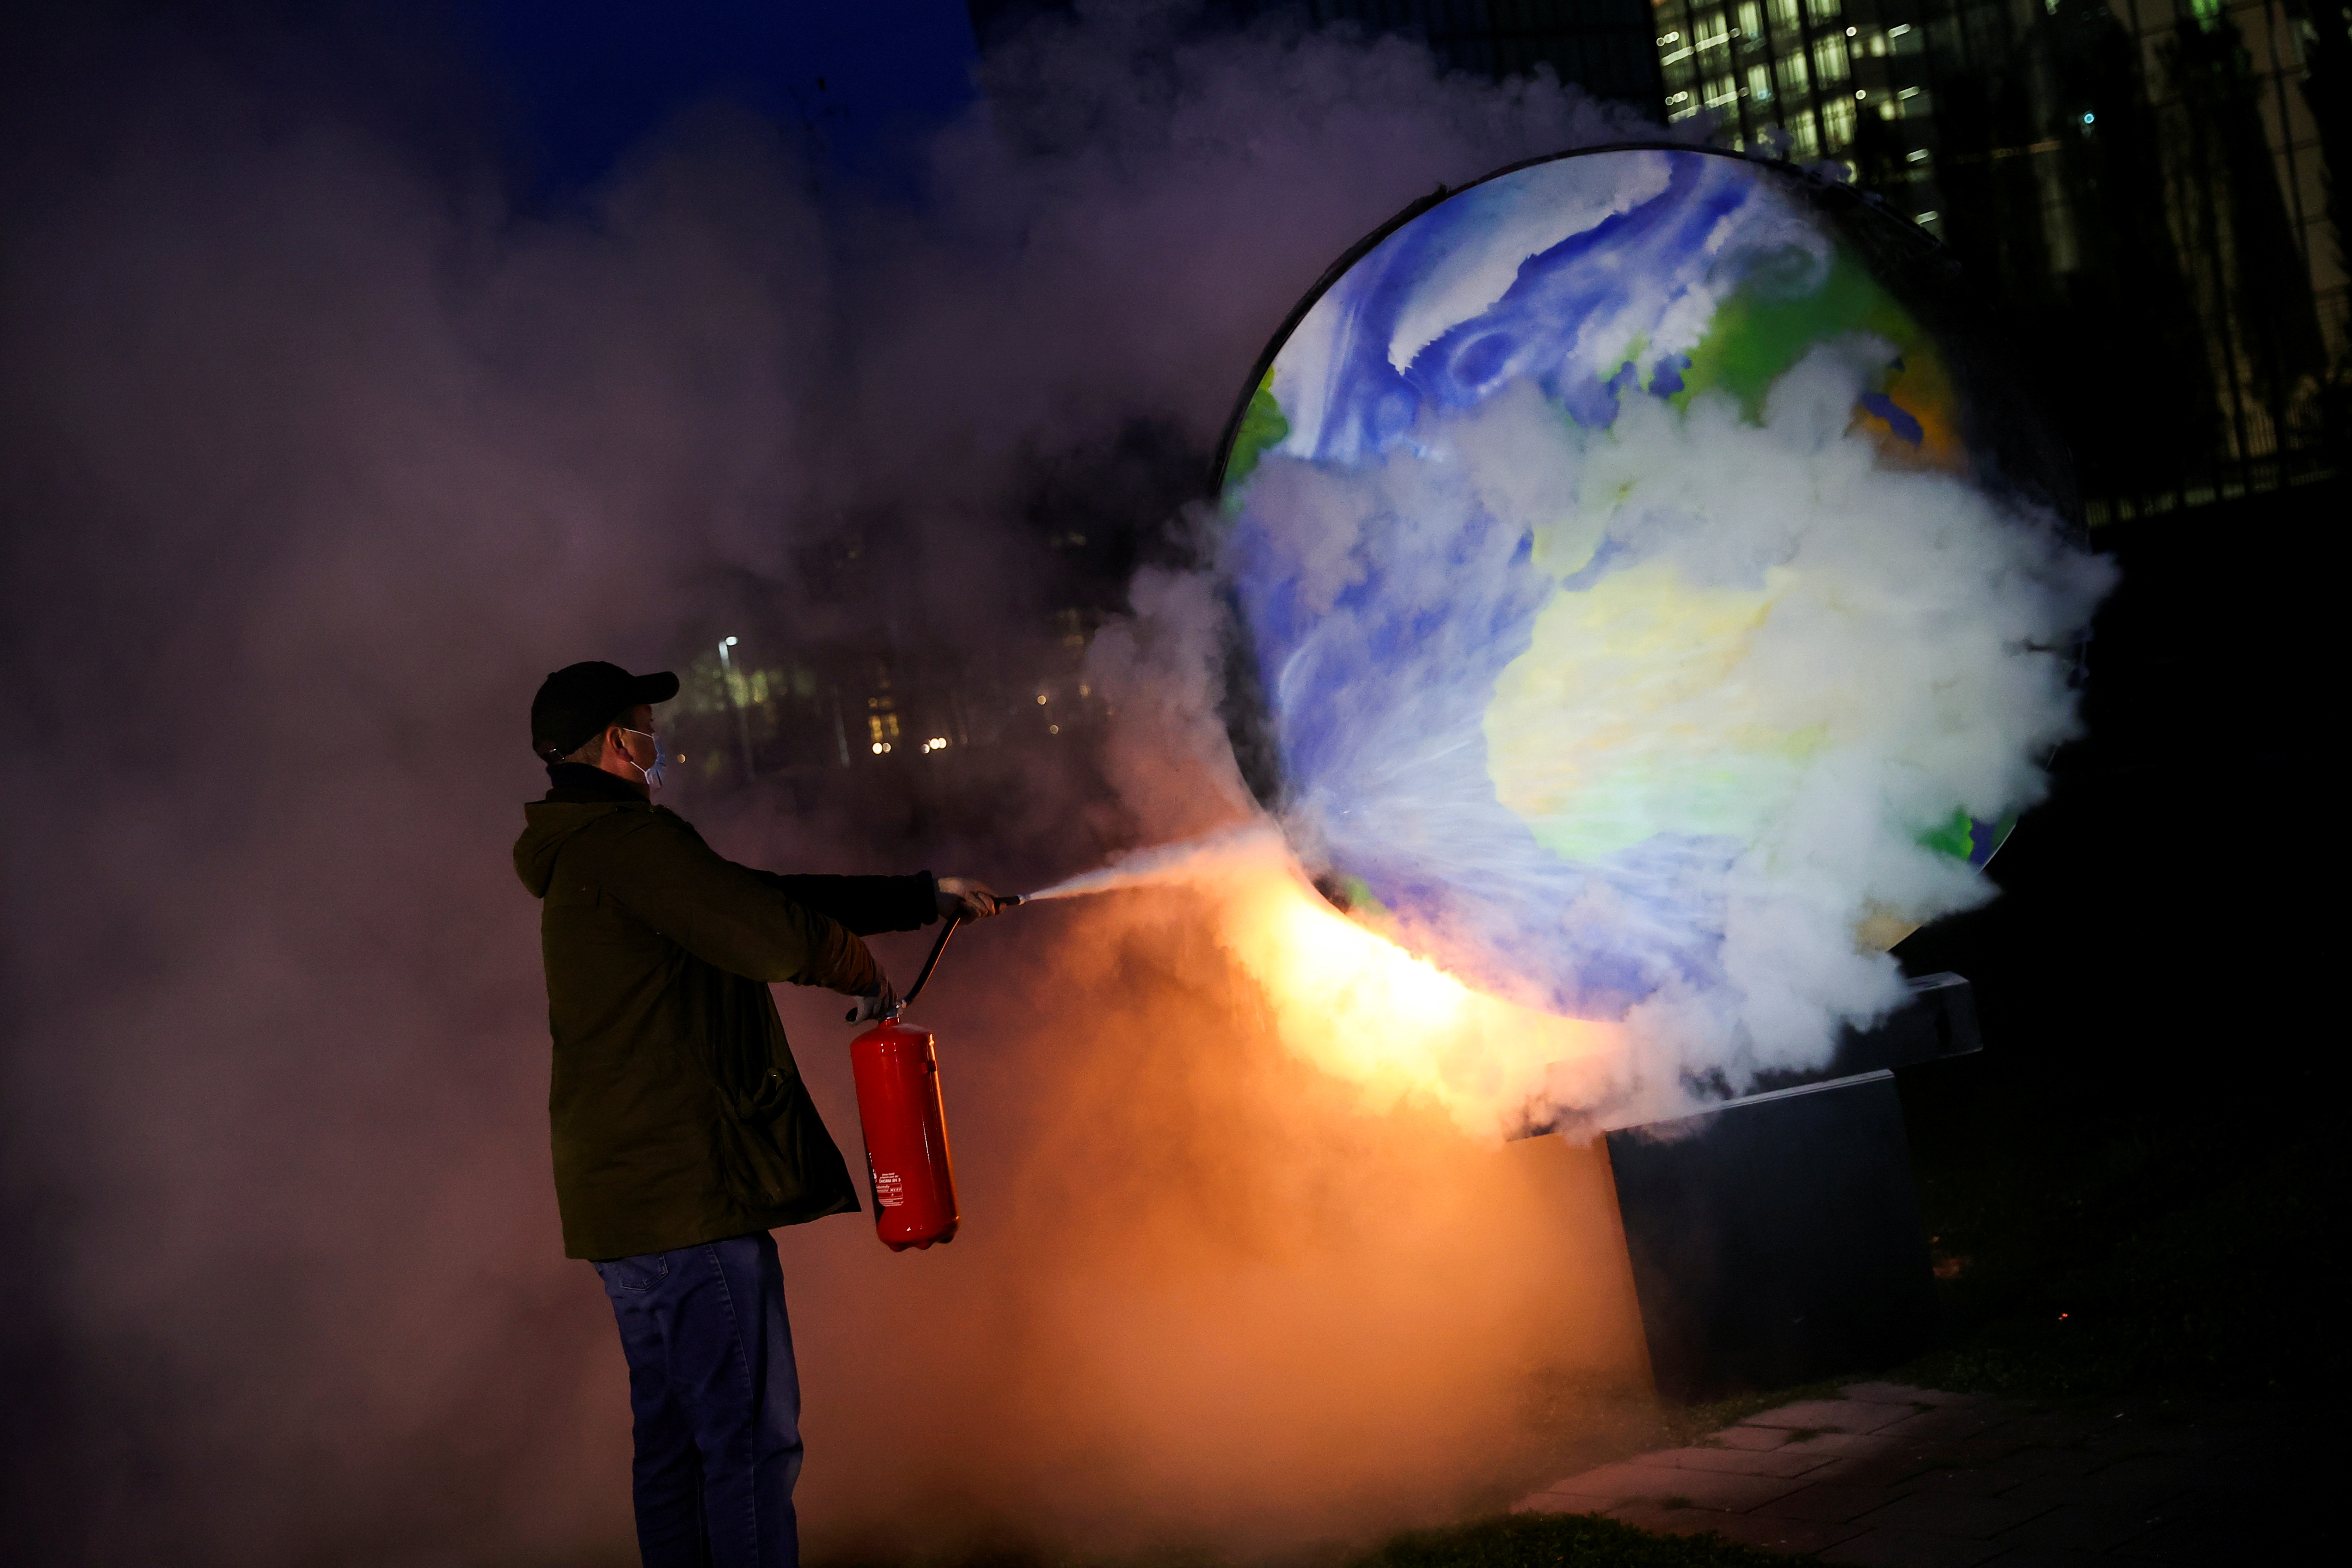 A person uses an extinguisher toward a burning paper-made globe during a demonstration against the fossil fuel industry in Frankfurt, Germany on October 21, 2020.